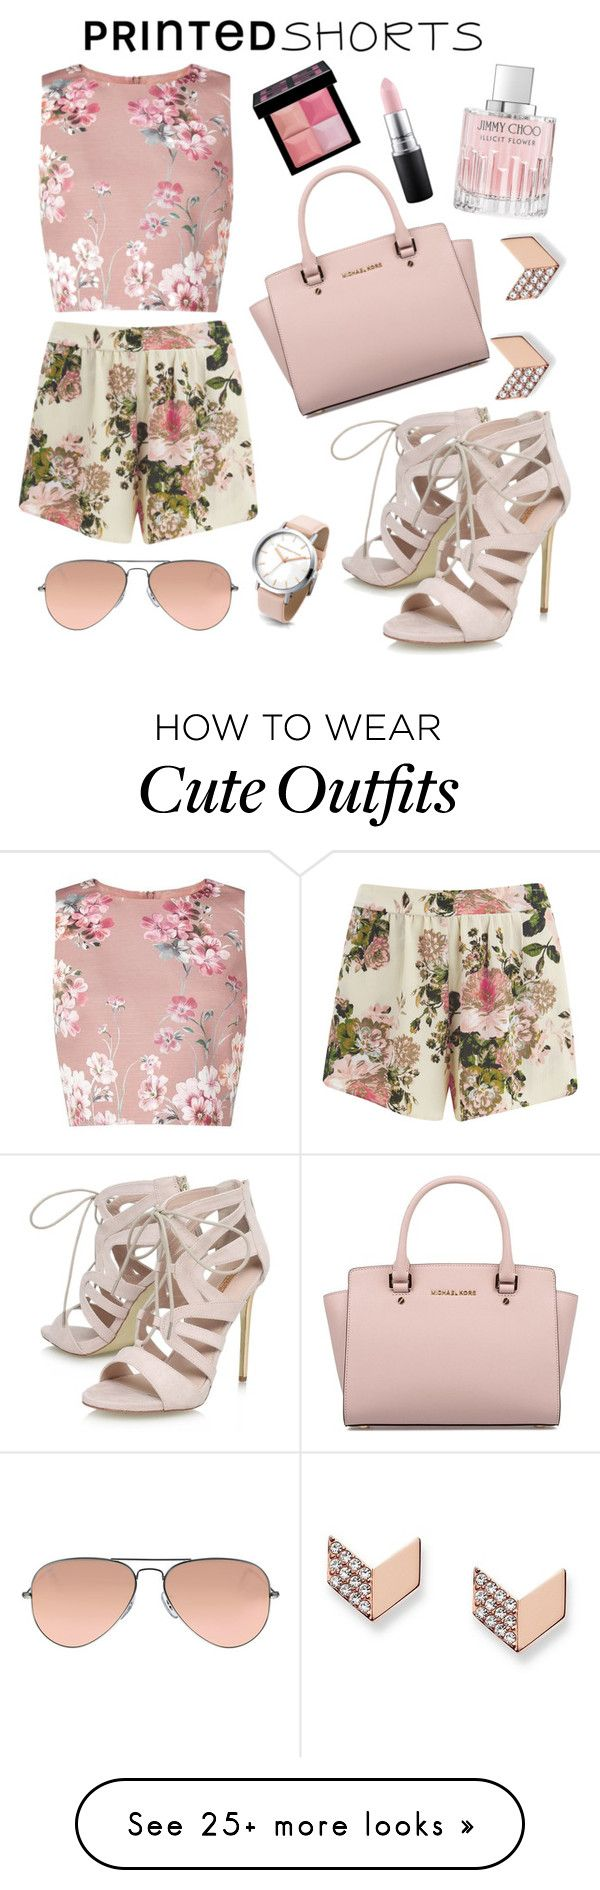 """A floral outfit with cute accesories to bring out the elegant but girly girl in you"" by kishiahsfashion on Polyvore featuring VILA, Miss Selfridge, Michael Kors, Givenchy, Carvela, Jimmy Choo, MAC Cosmetics, FOSSIL, Ray-Ban and printedshorts"